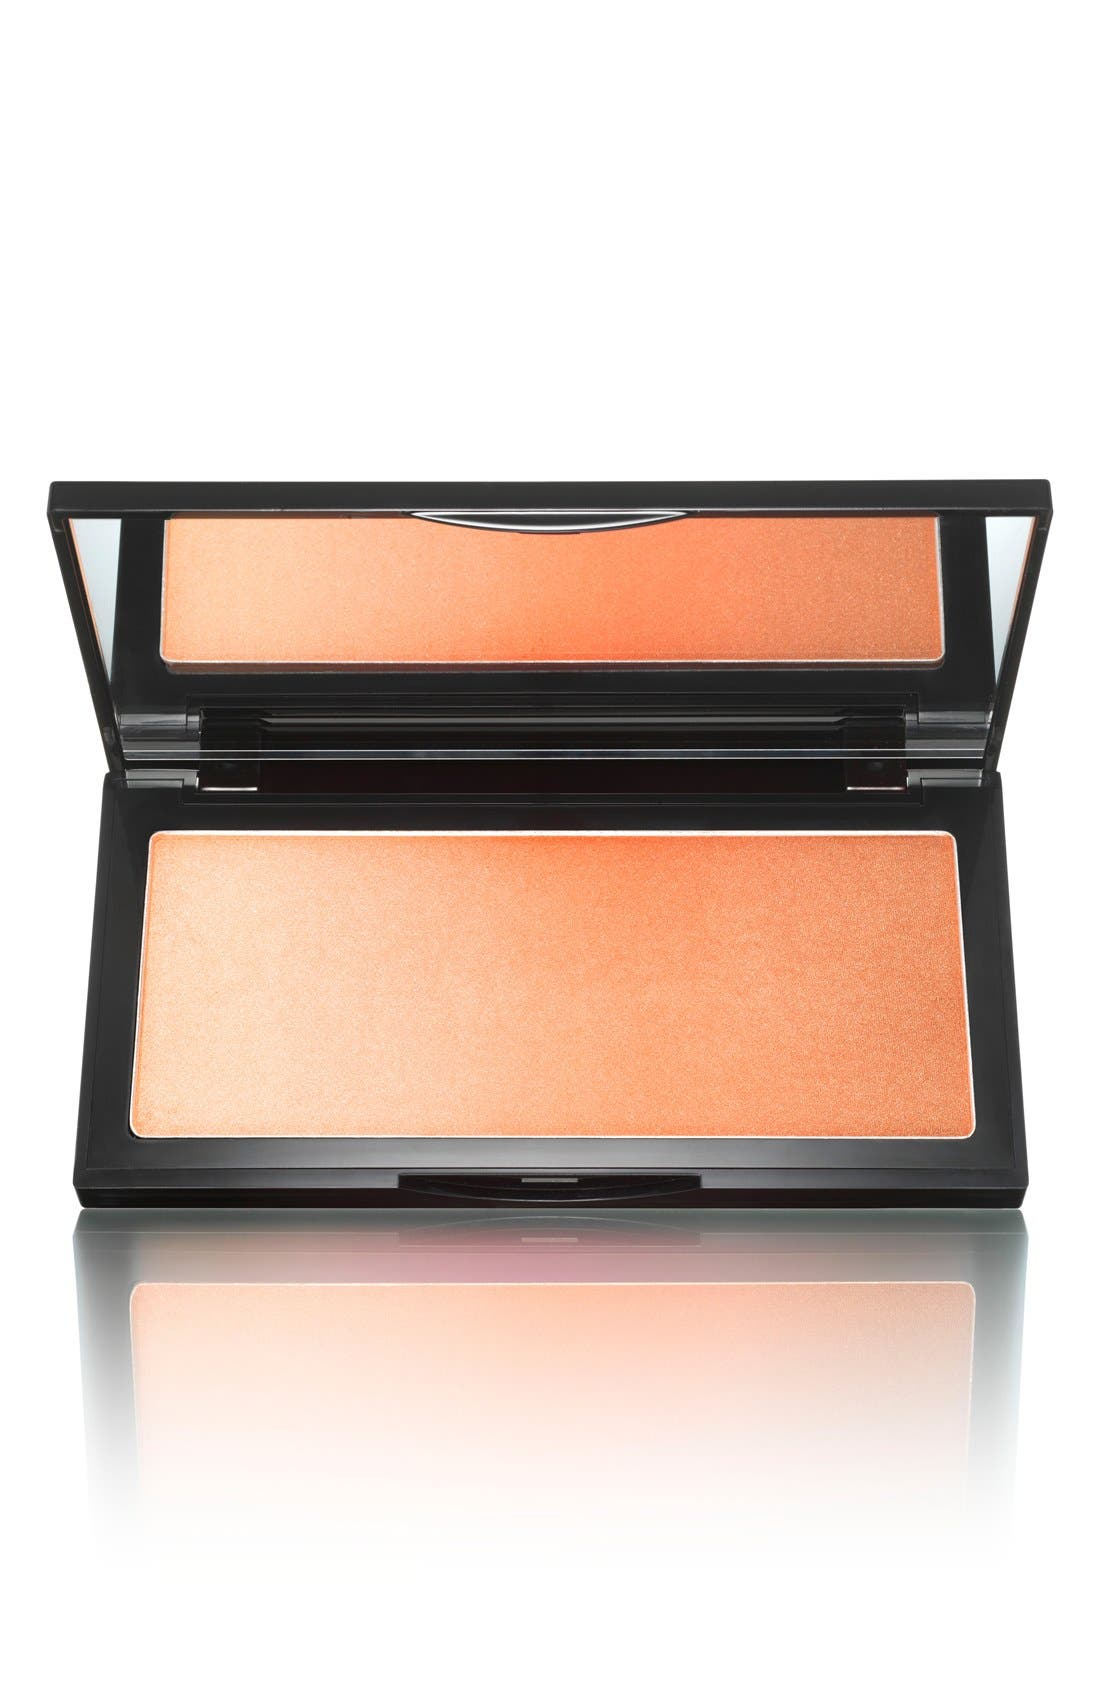 SPACE.NK.apothecary Kevyn Aucoin Beauty The Neo-Bronzer Face Palette,                             Main thumbnail 1, color,                             SIENA/ WARM CORAL